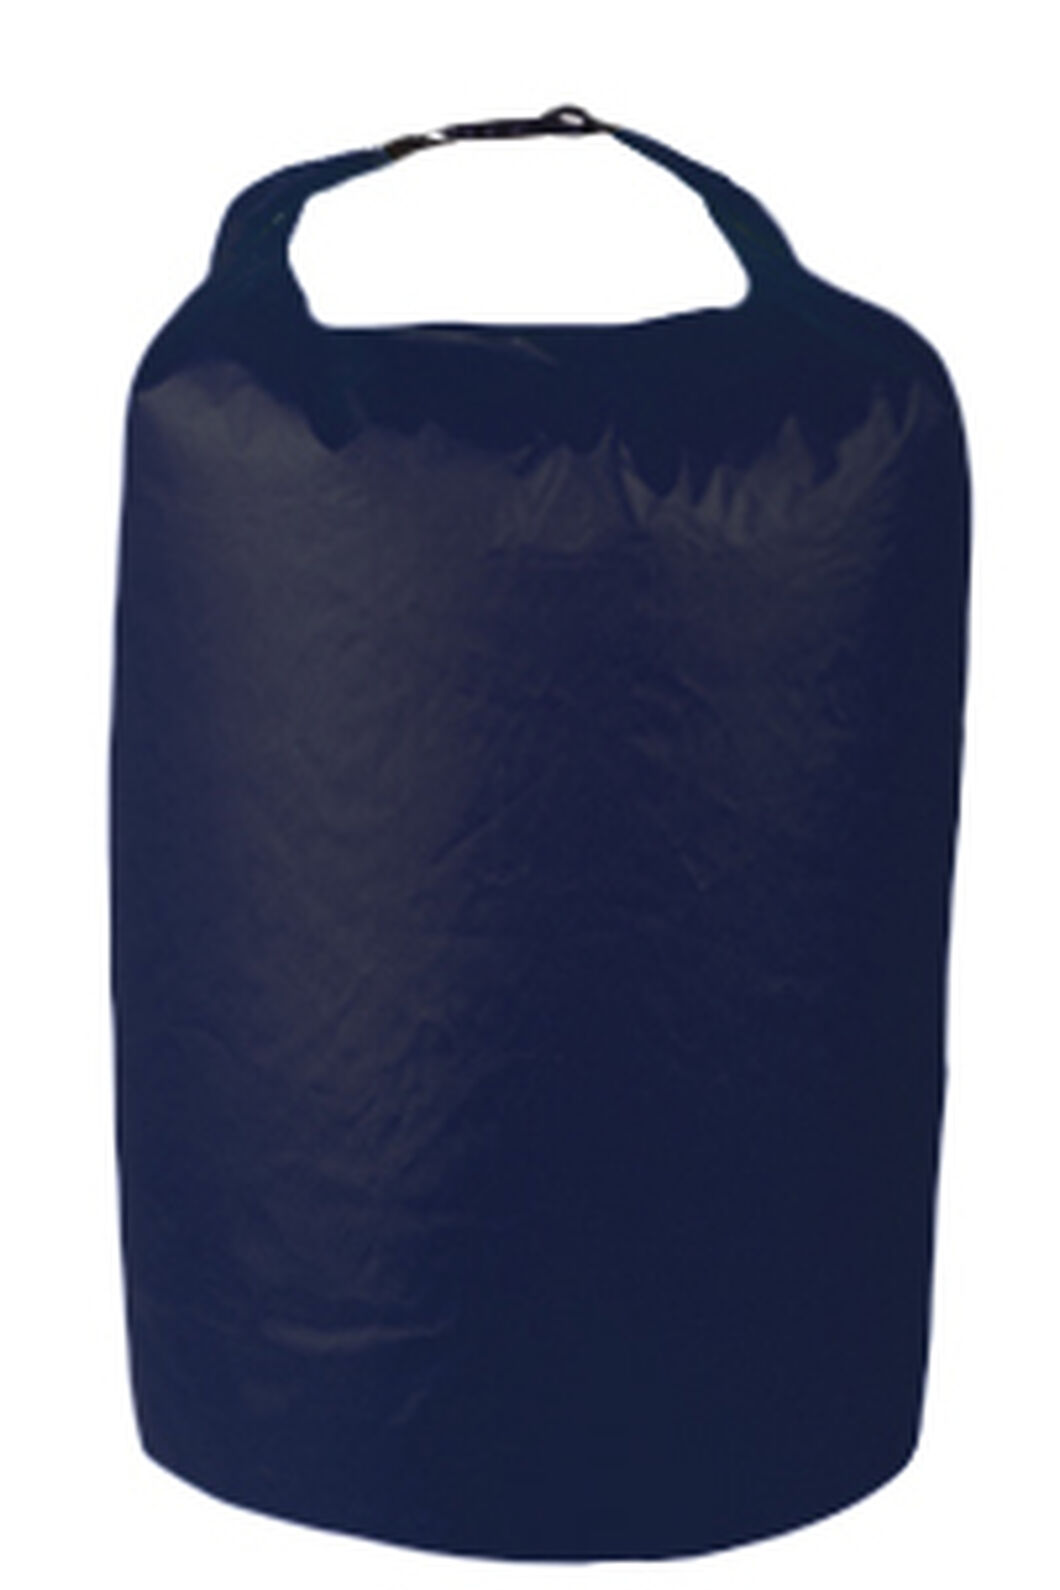 Macpac Ultralight Dry Bag 2.5 L, Sodalite Blue, hi-res